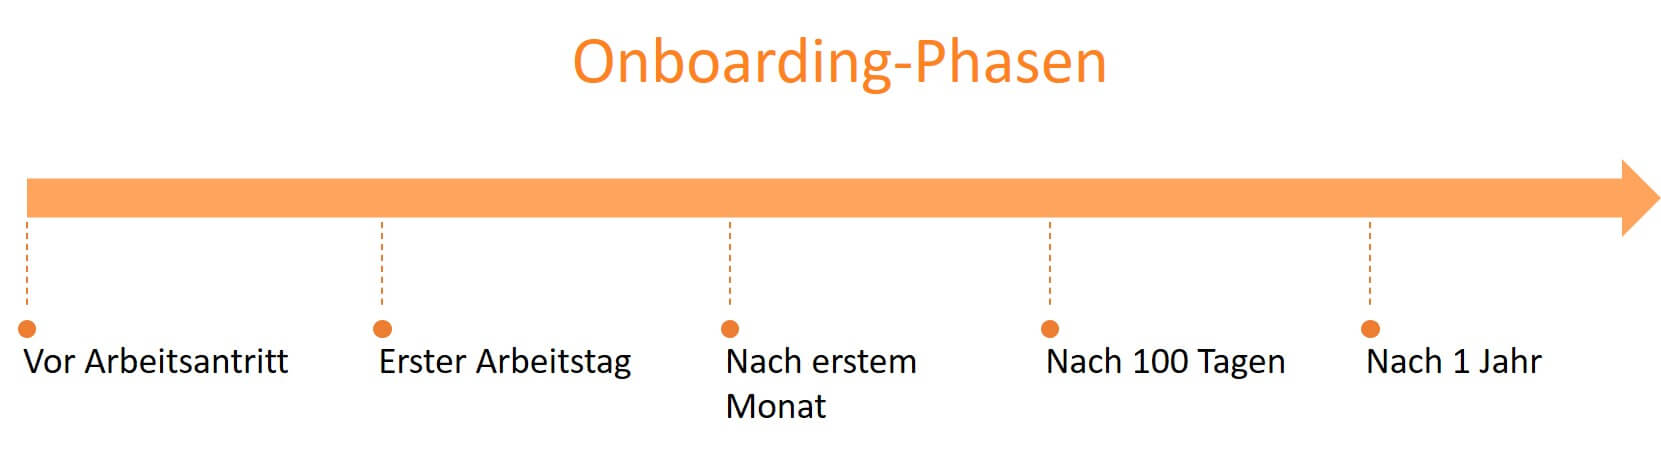 Phasen des Onboardings